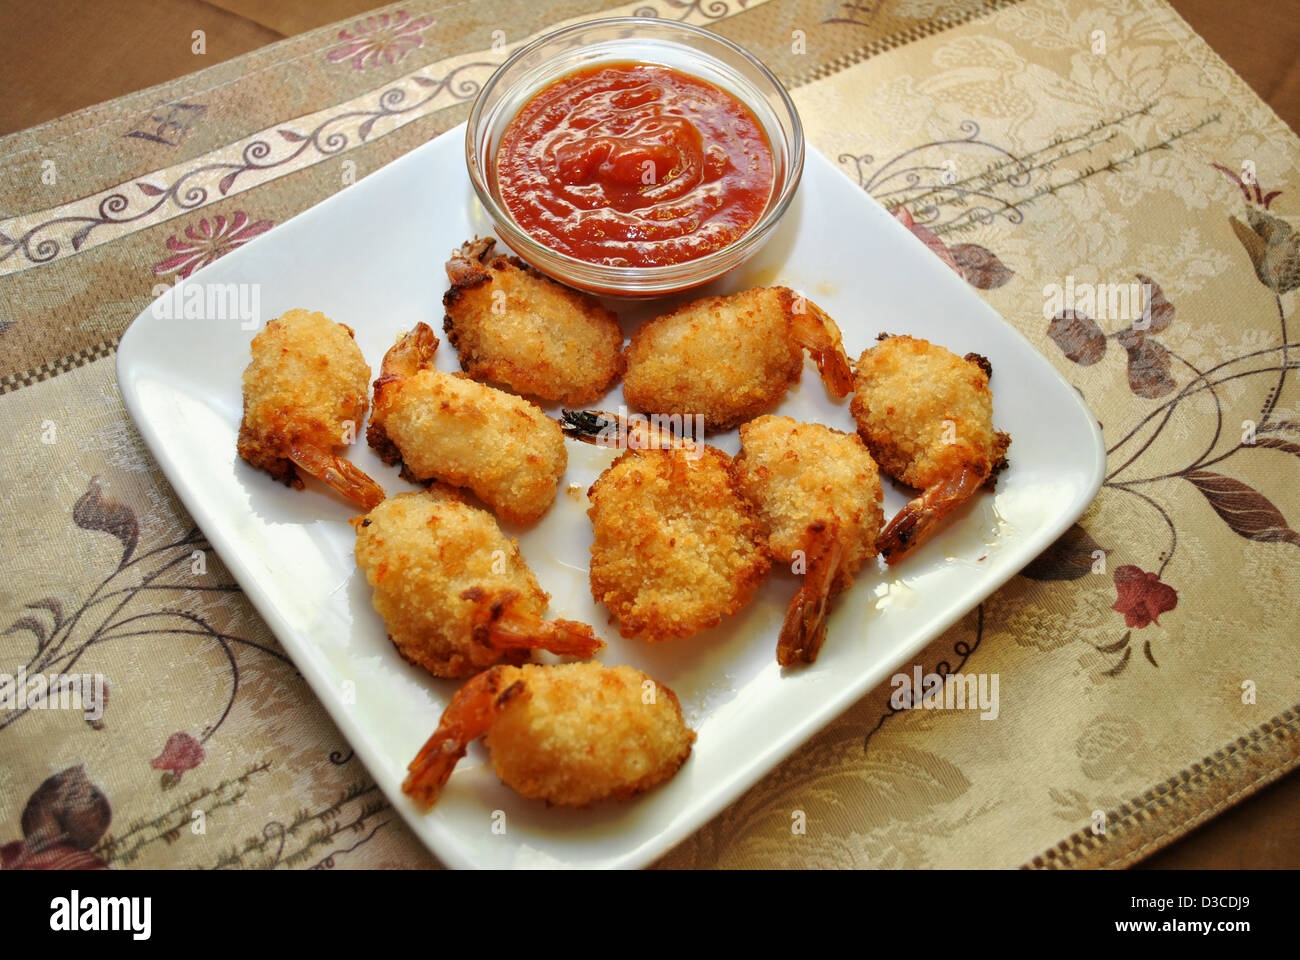 Cocktail Sauce with Breaded Shrimp Stock Photo